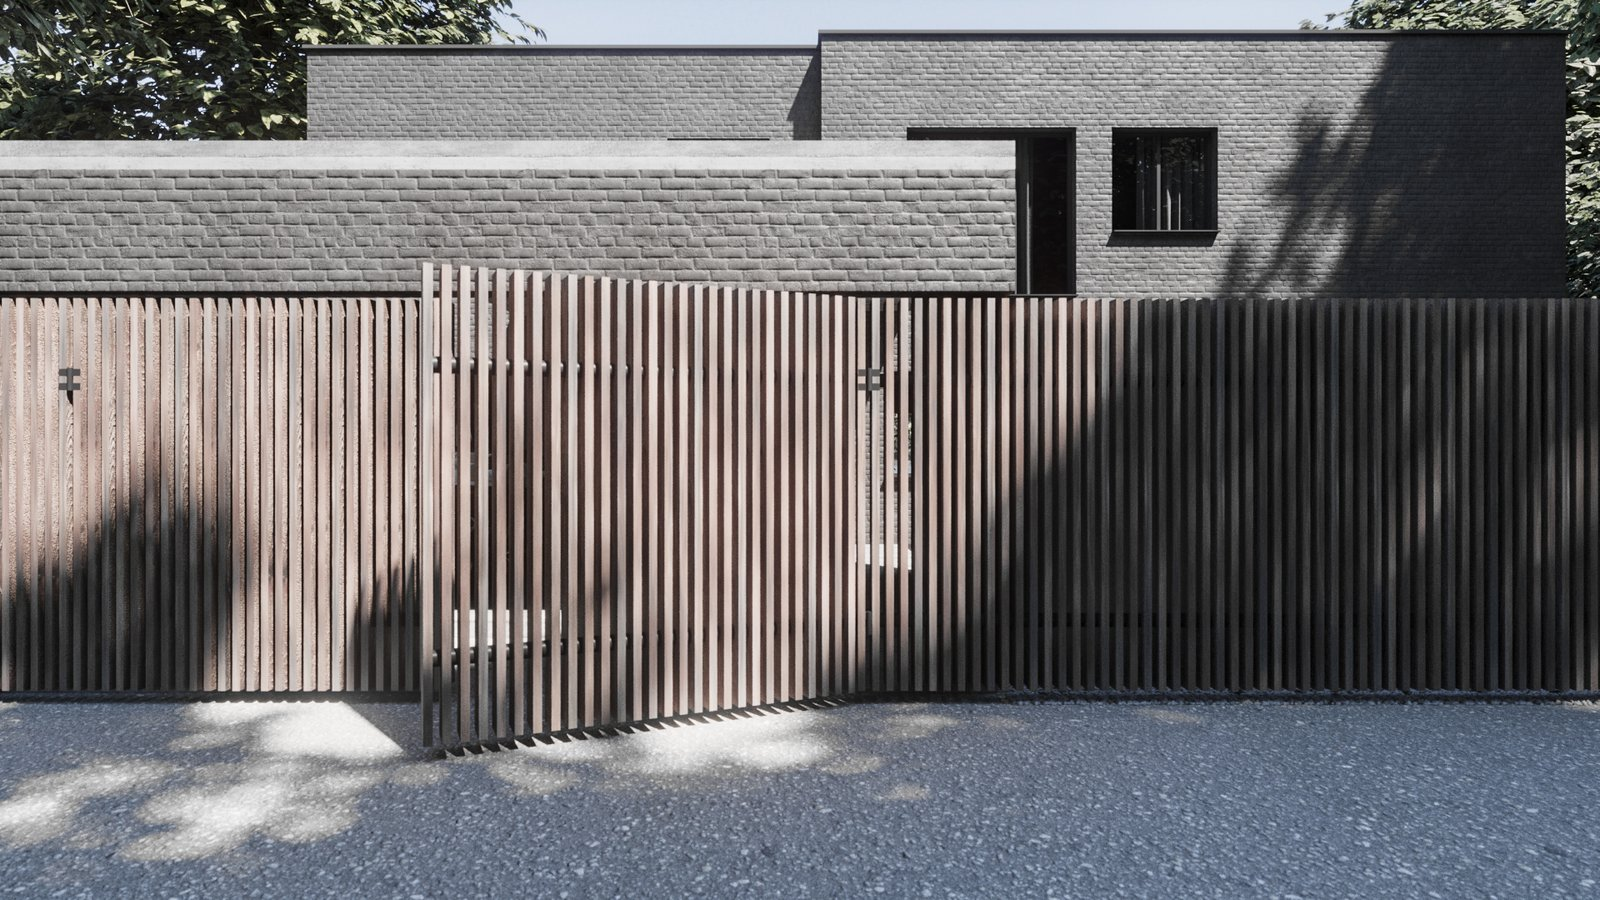 Exterior, Tiny Home, Flat, Shingles, House, Metal, Brick, and Wood Massive wooden fence, which is a stripe, is on the background of a brick house, which is a square.  Best Exterior Metal Wood House Flat Shingles Photos from The Grey House